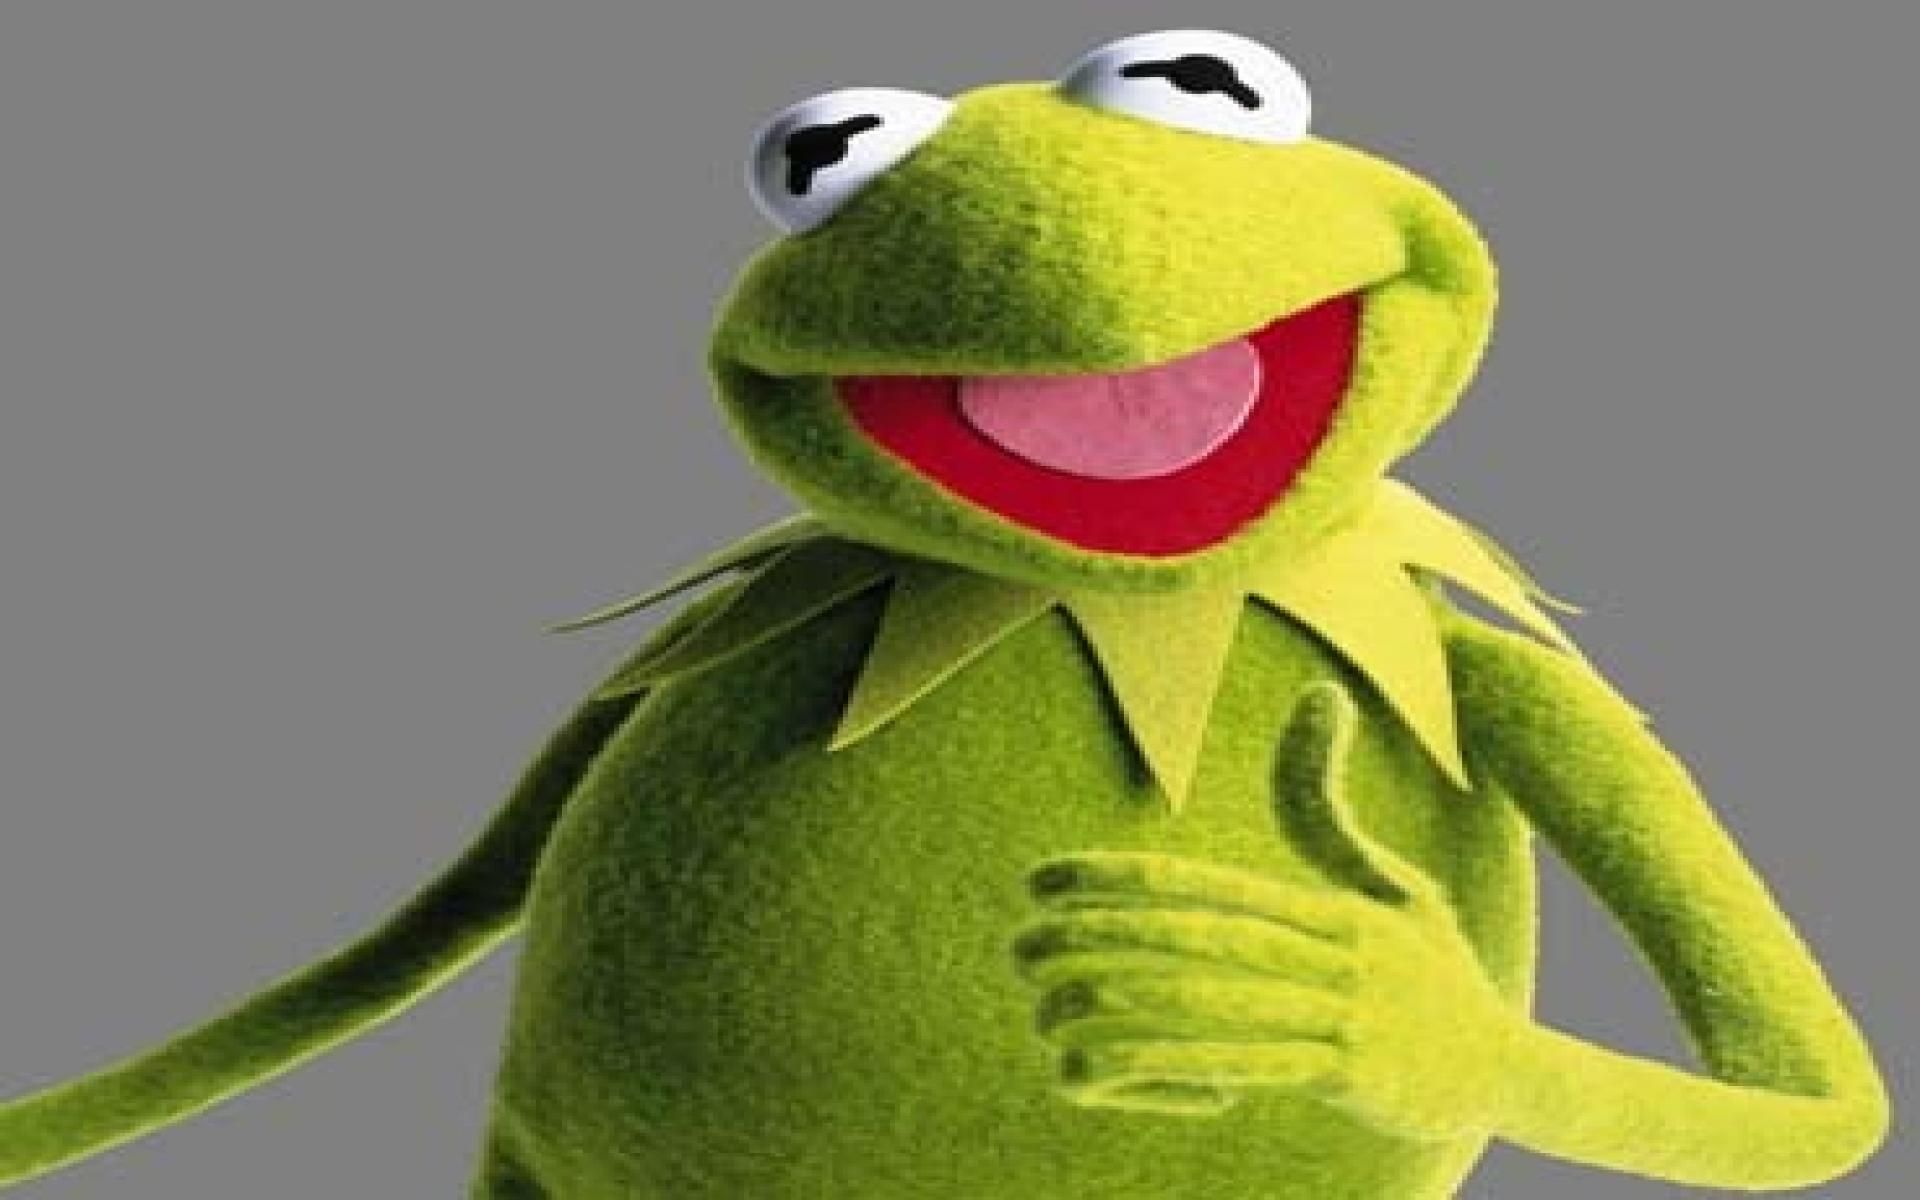 1920x1440 This Is My New Favorite Wallpaper Bliss Windows XP Kermit The